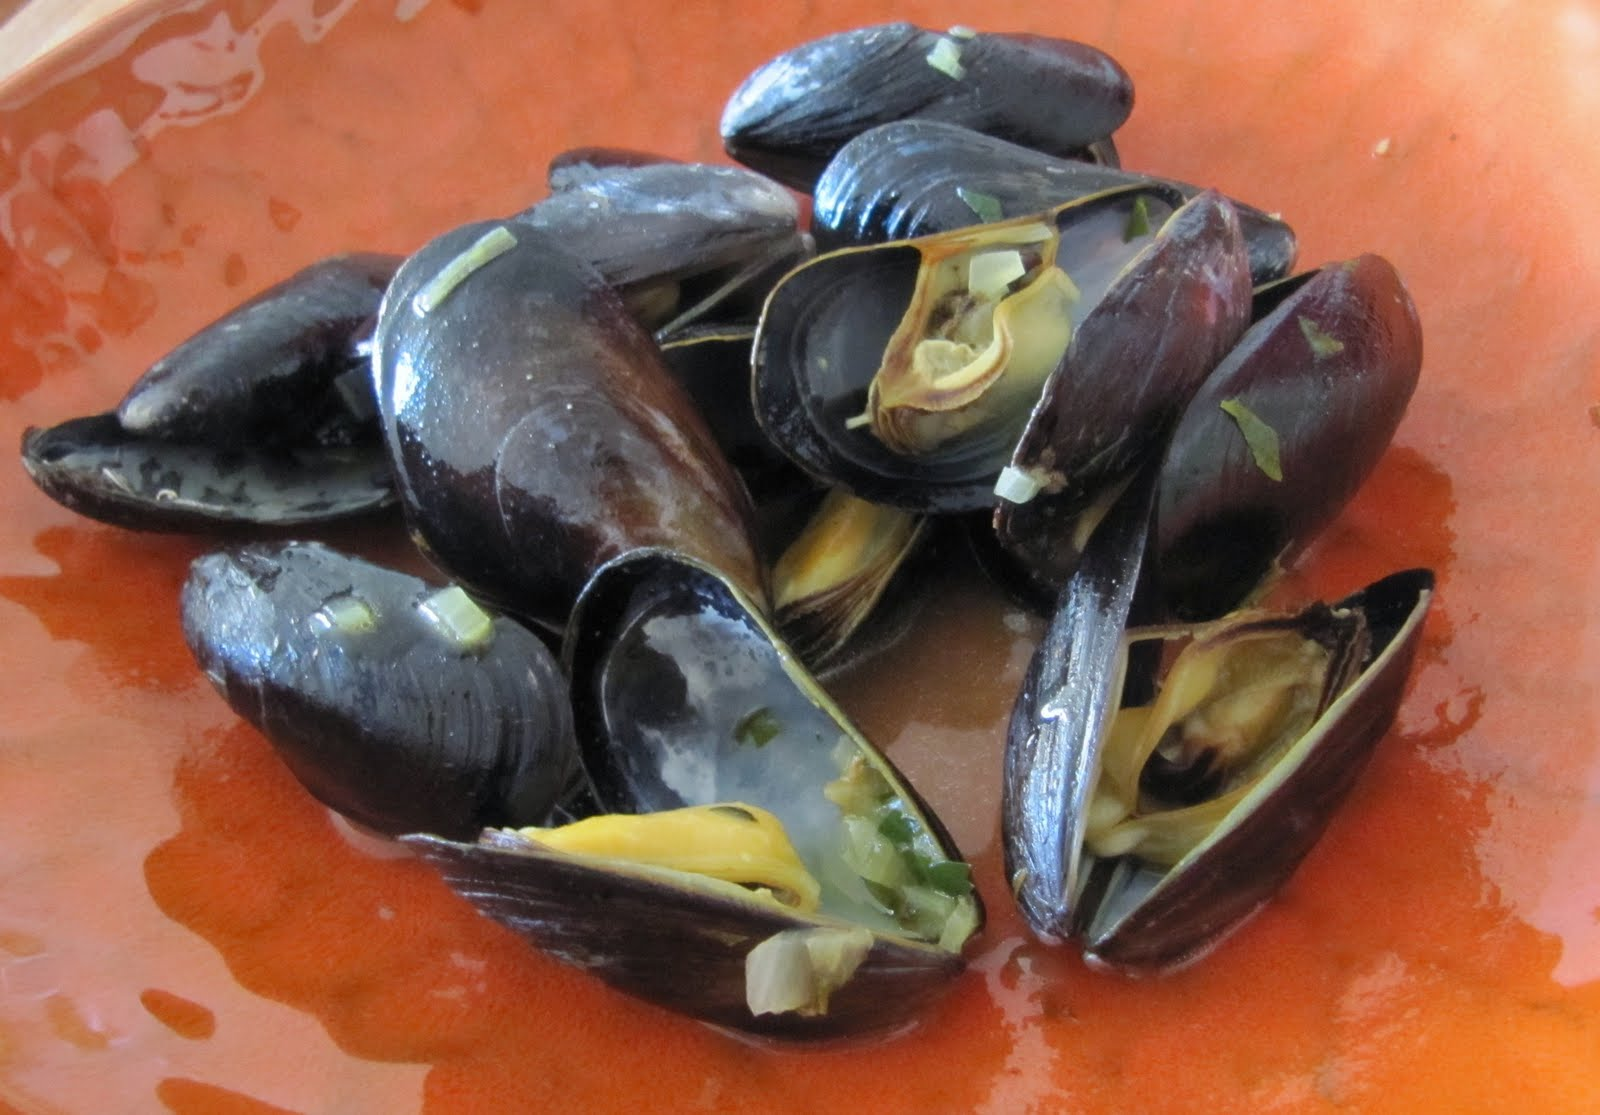 Mussels in a Saffron Broth | Quinces and Lemons